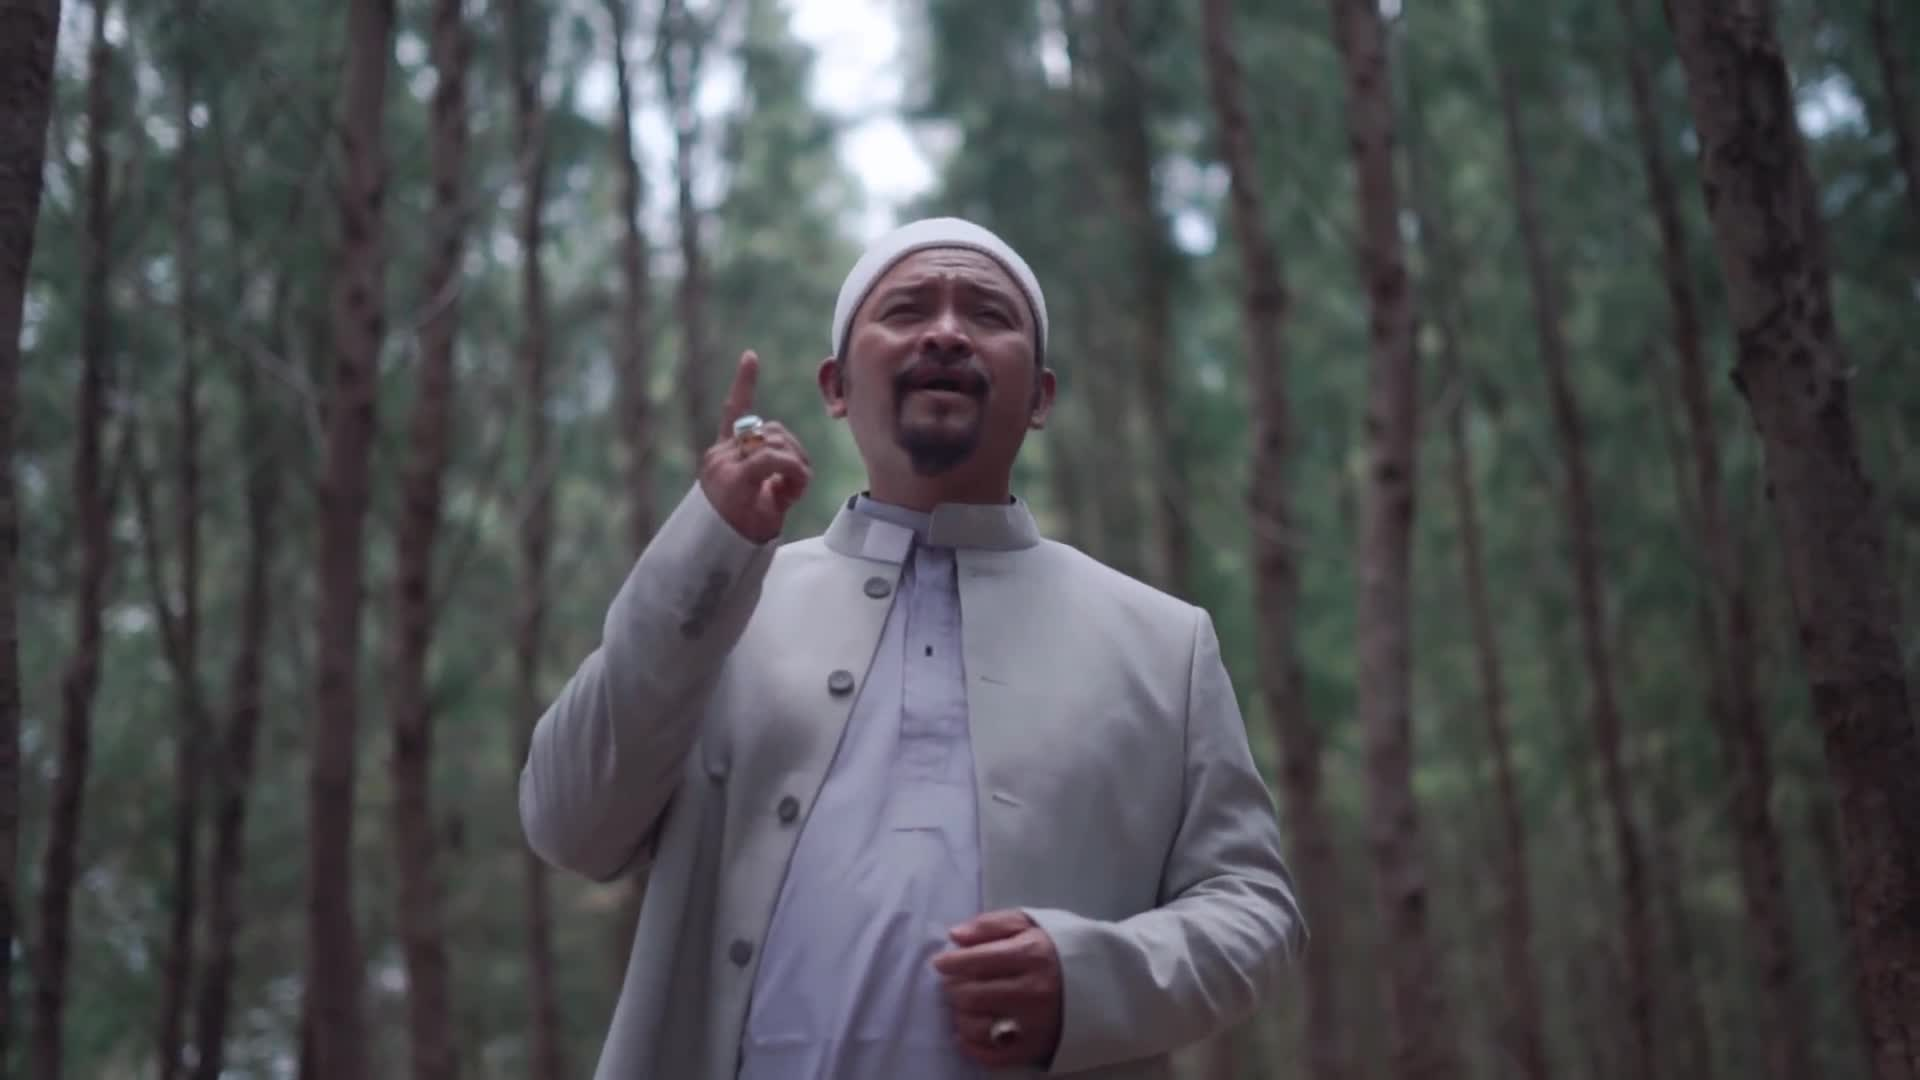 This nasheed celebrity walked away from fame. Here's why.